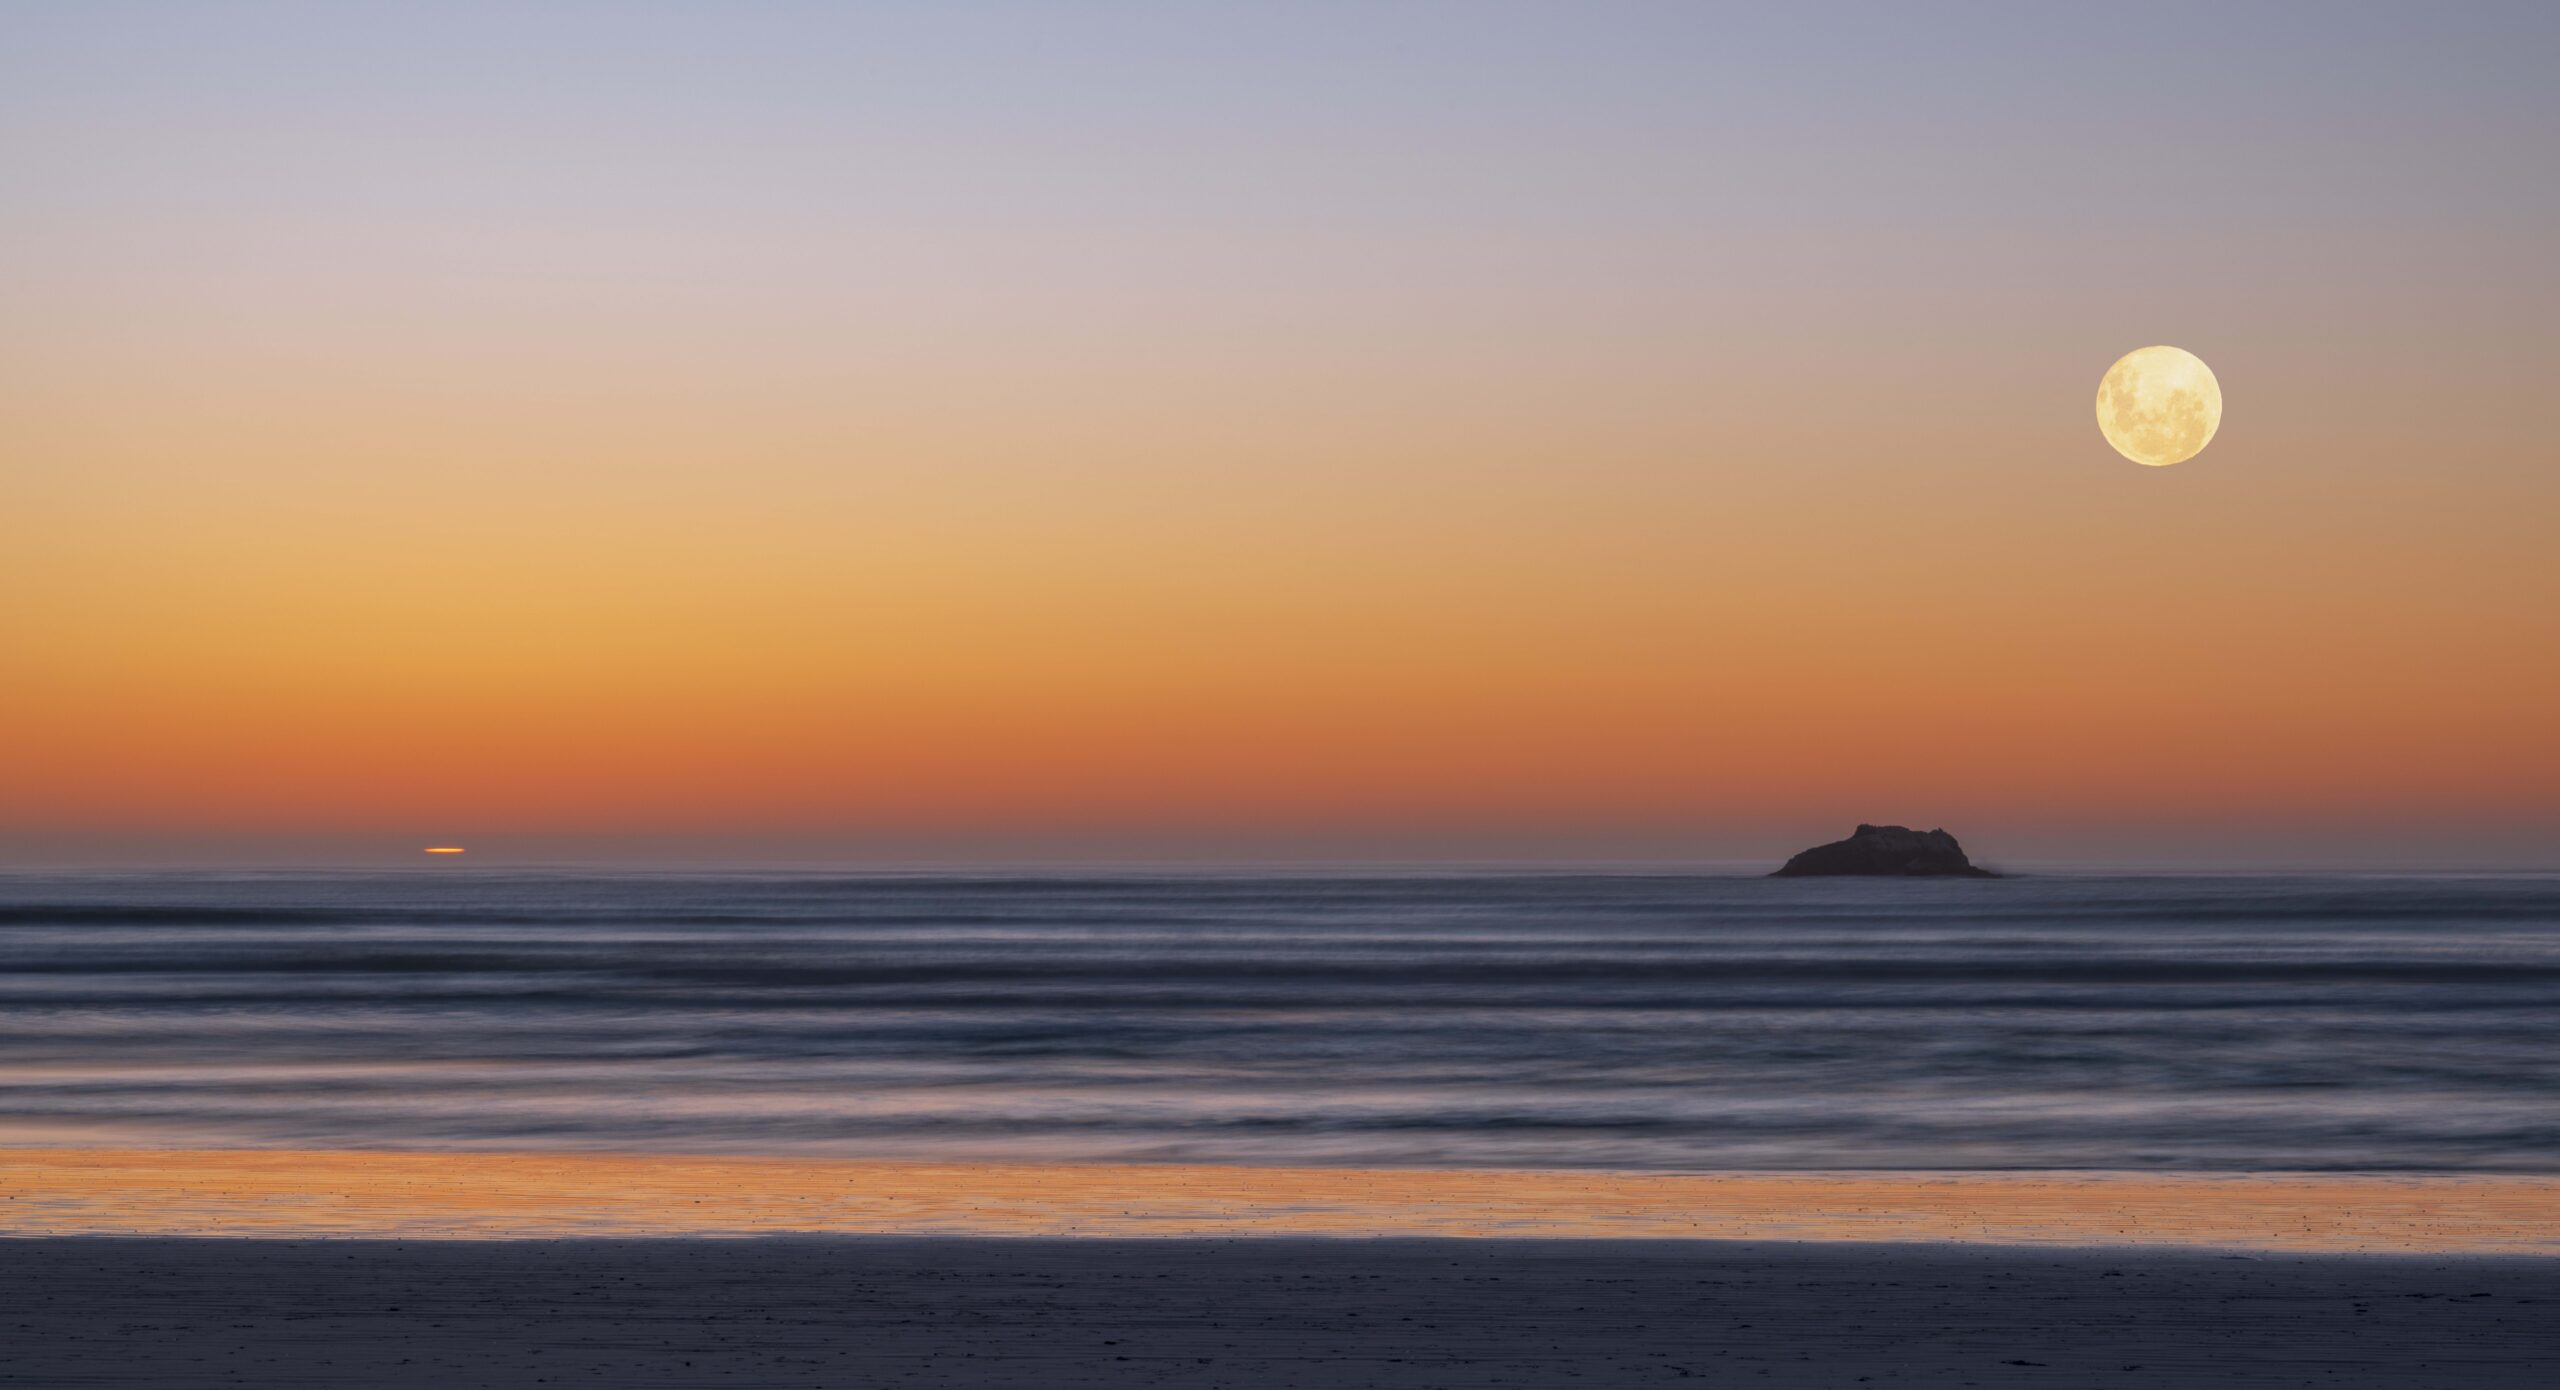 fine art photography, sunset, photography Western Cape, landscape, ocean, sun and the moon, limited edition prints, long exposure photography,